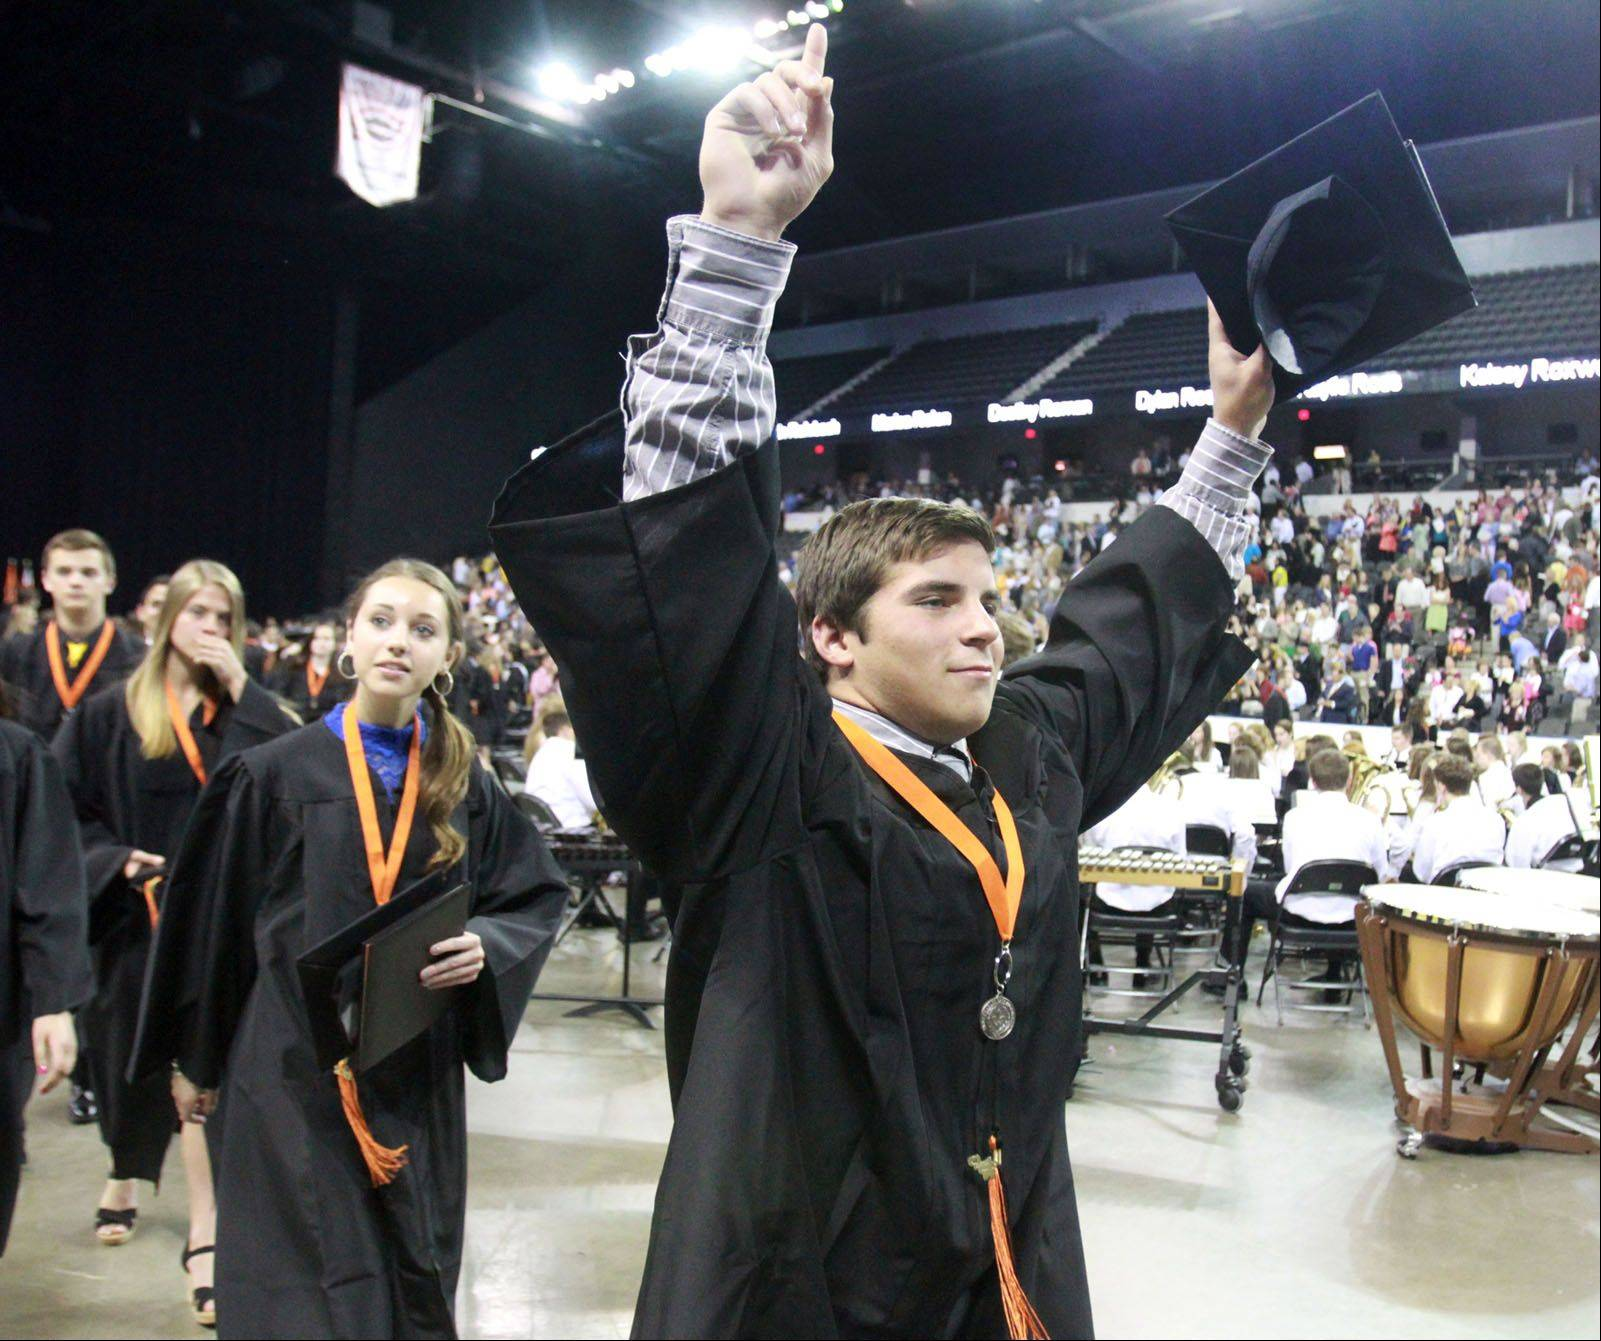 St. Charles East High School graduate Sam Malone raises his cap as he leads student marching out of the school's commencement ceremony at the Sears Centre in Hoffman Estates on Sunday, May 26, 2013.